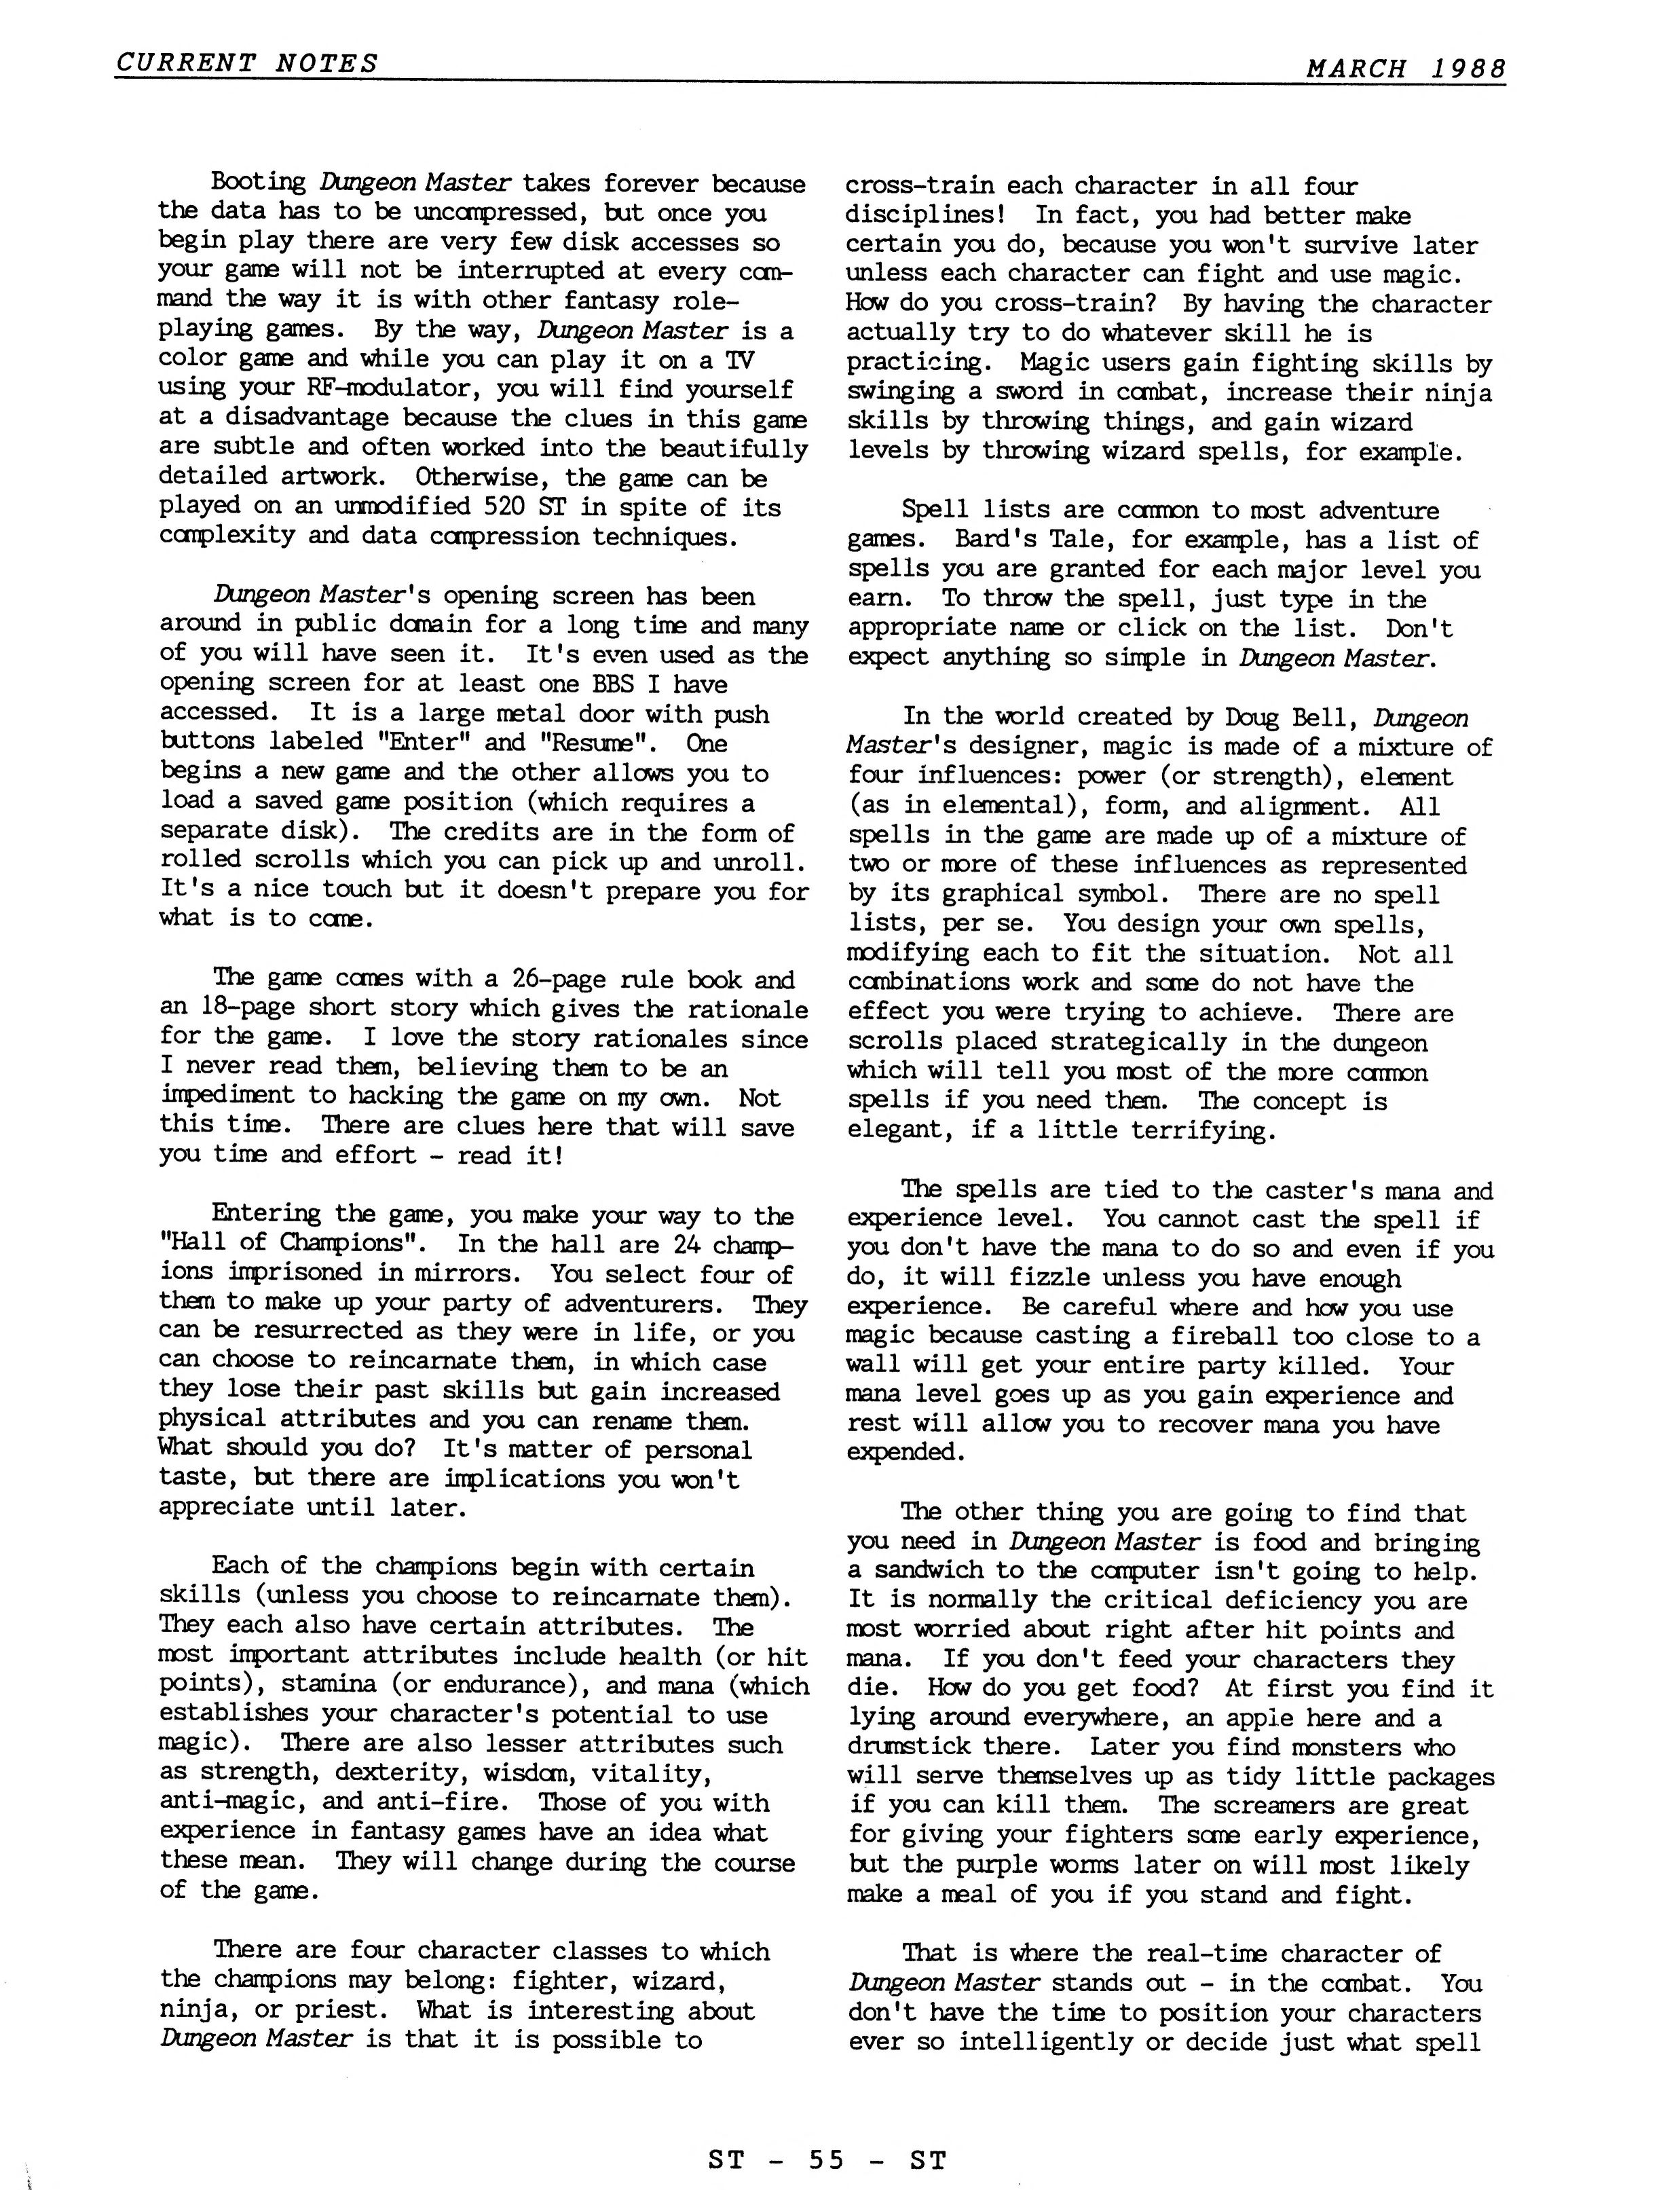 Dungeon Master for Atari ST Review published in American magazine 'Current Notes', March 1988, Page 55